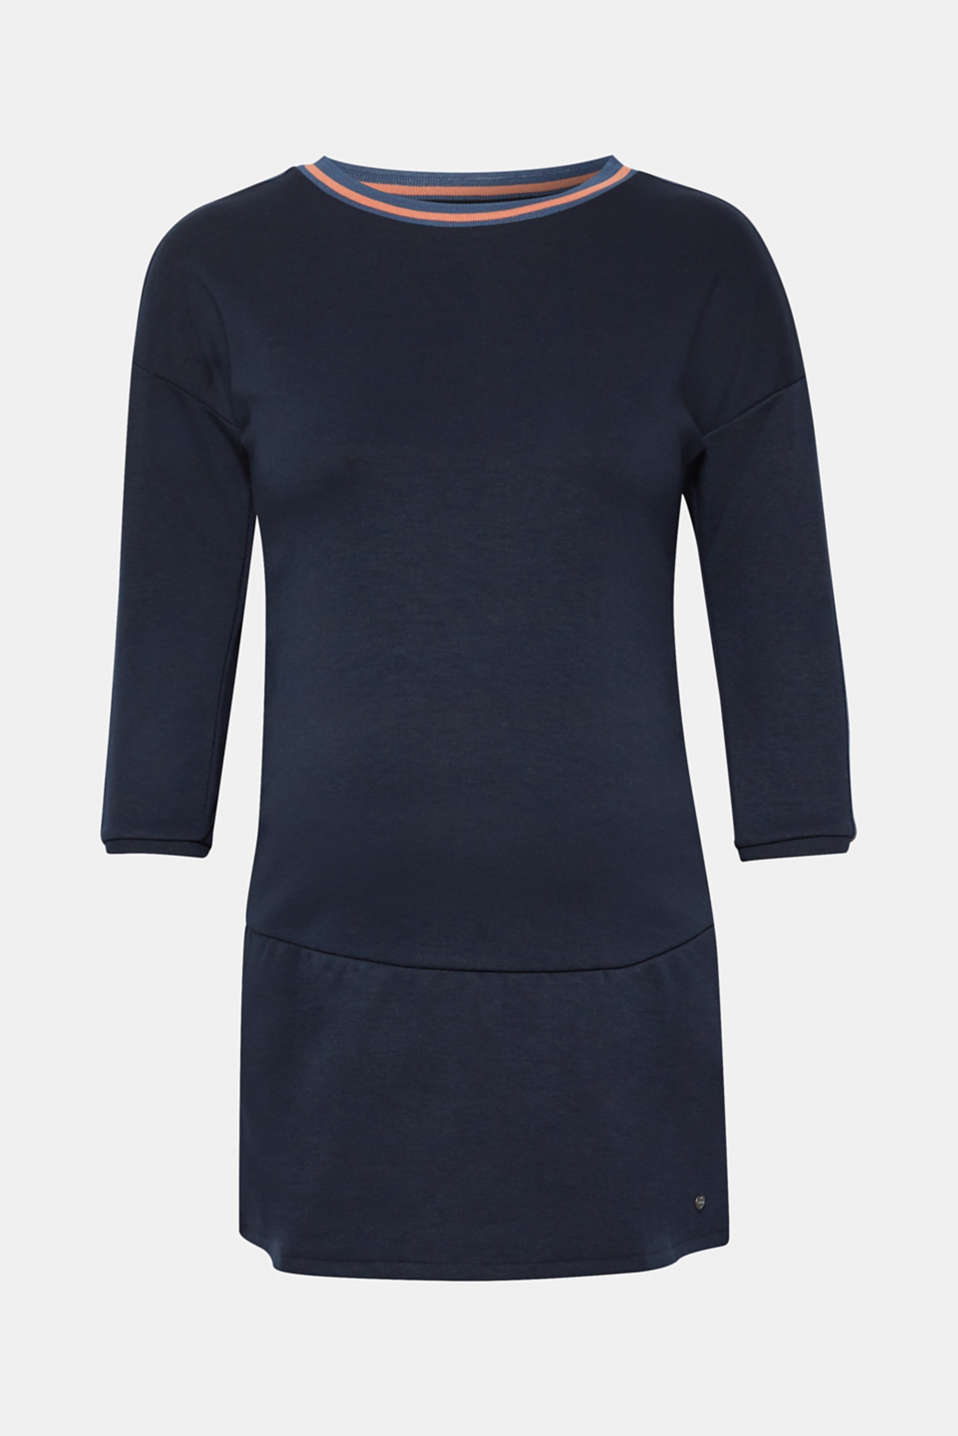 Sweatshirt tunic with striped woven tape decoration, LCNIGHT BLUE, detail image number 6